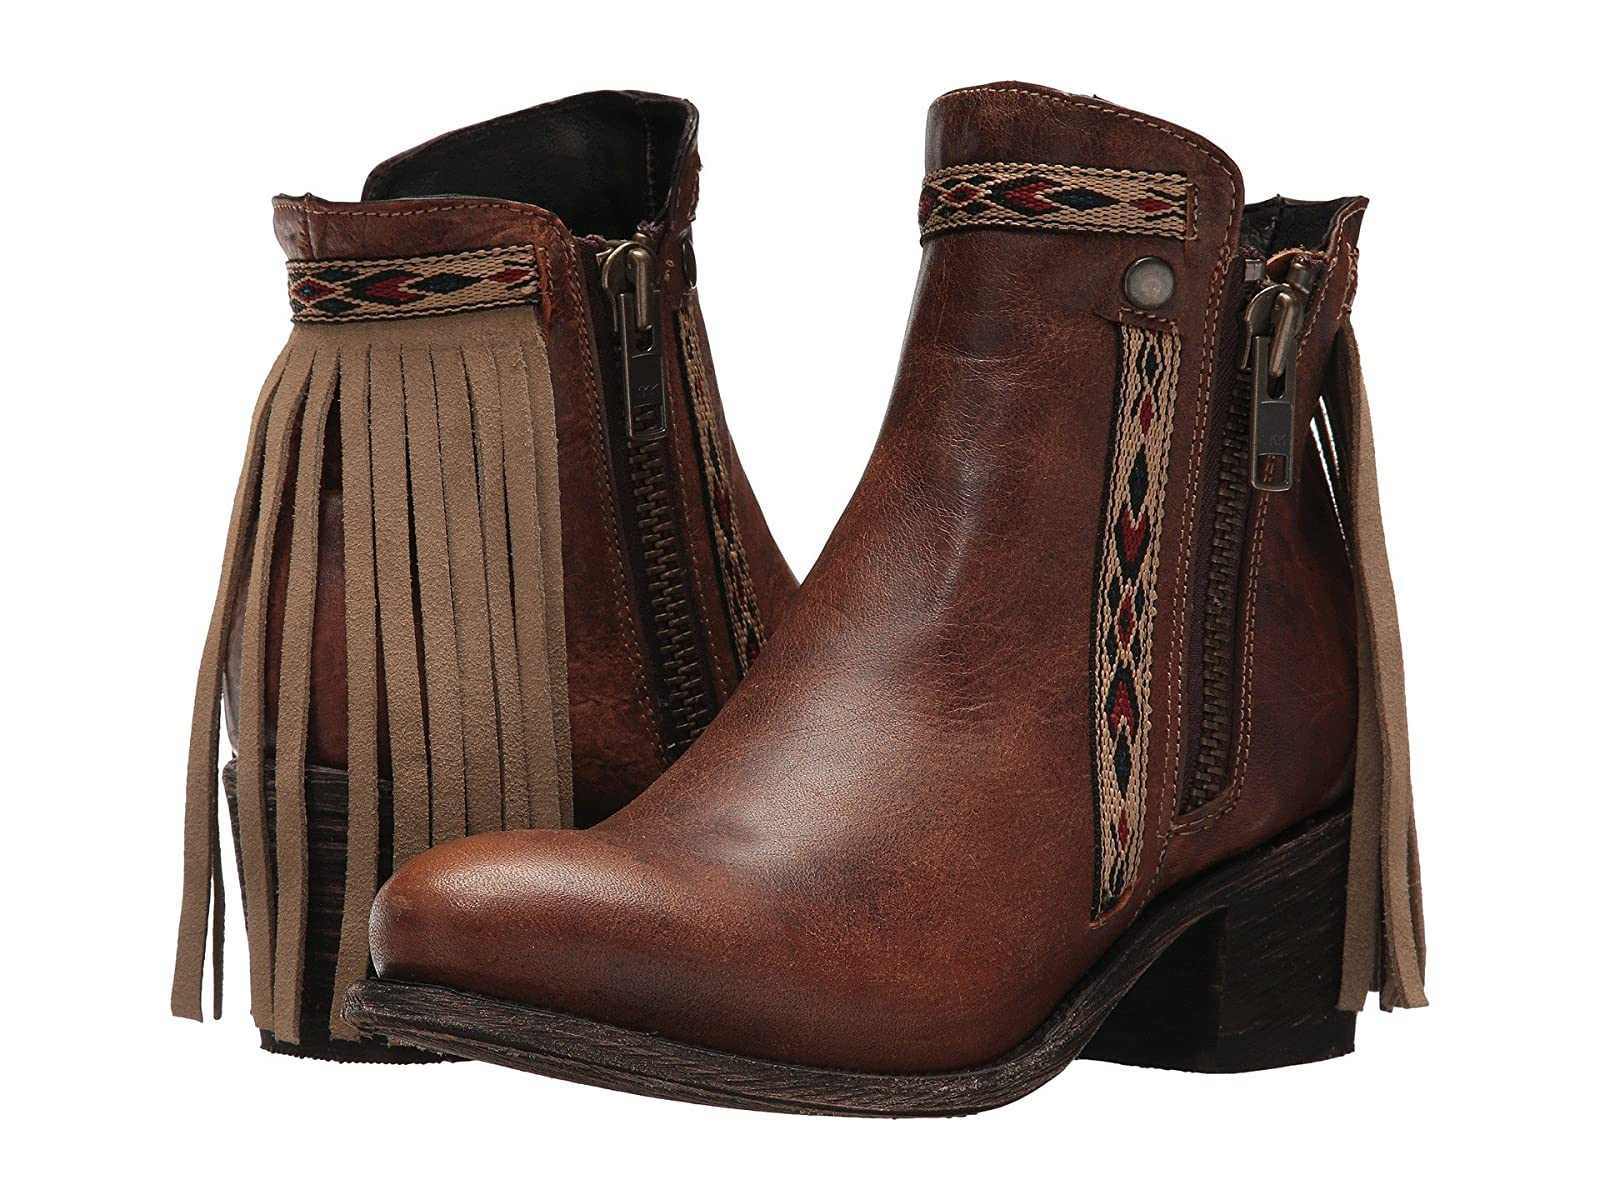 Corral Boots E1215Affordable and distinctive shoes